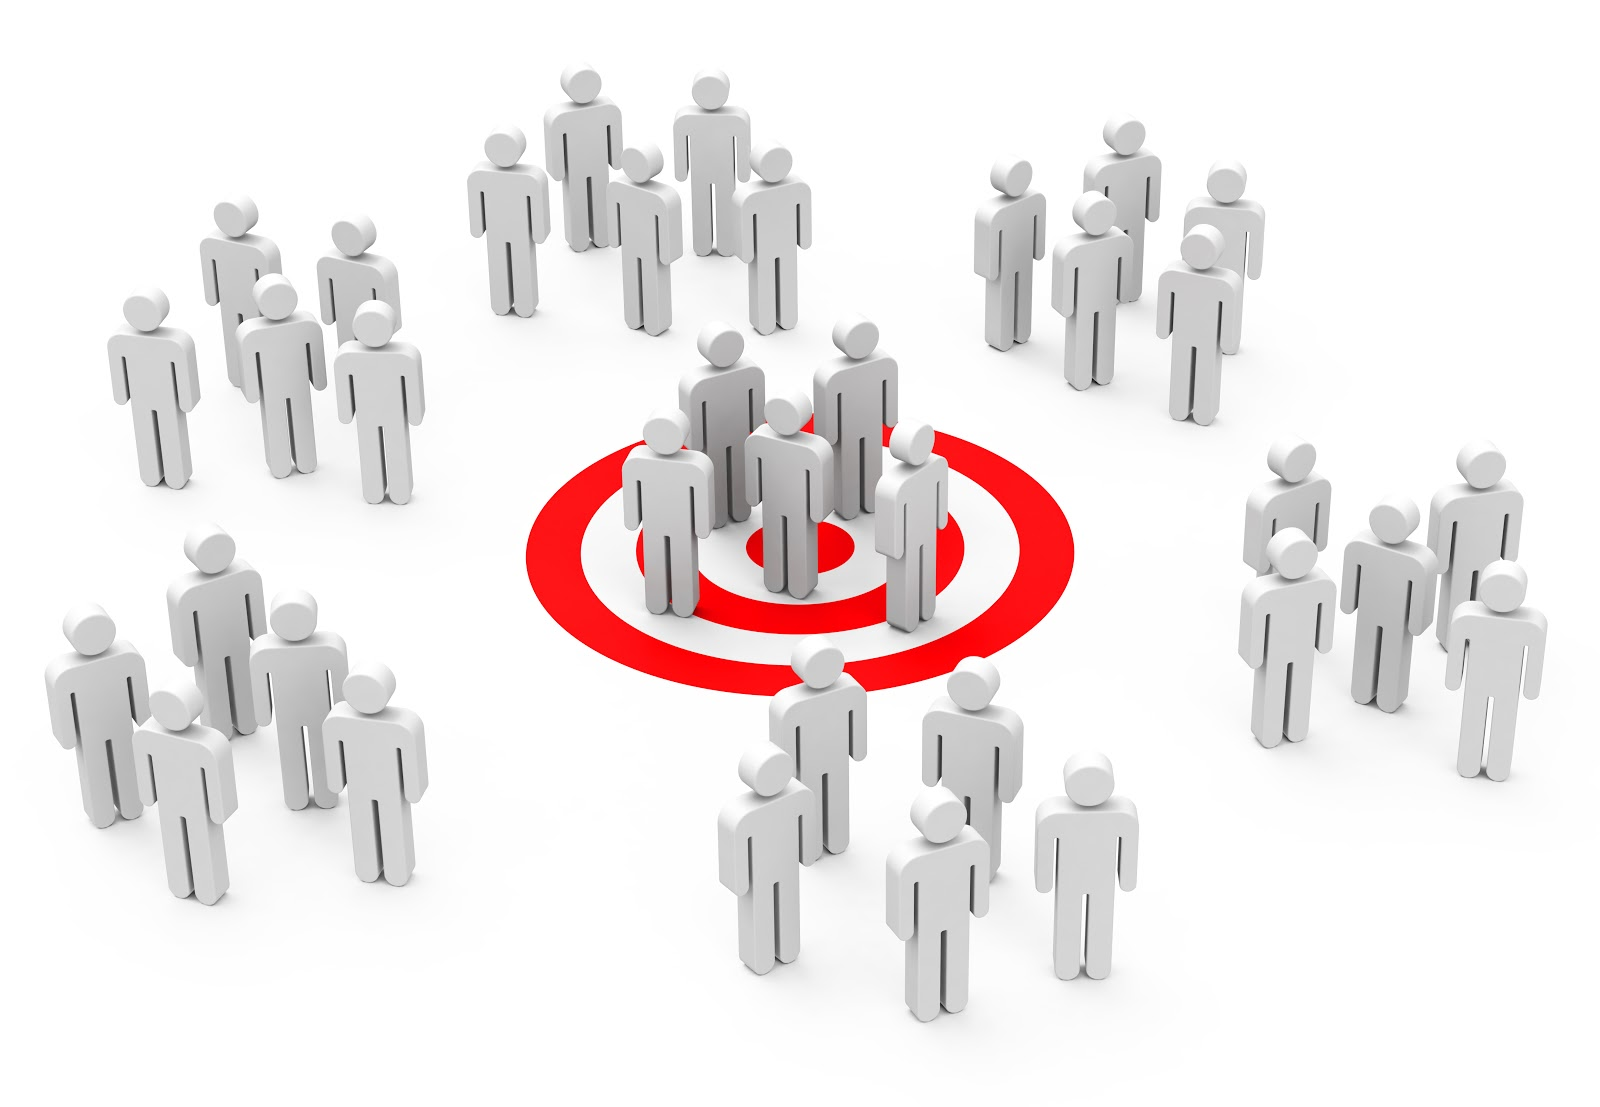 Sales cycle: Groups of people icons on a bullseye